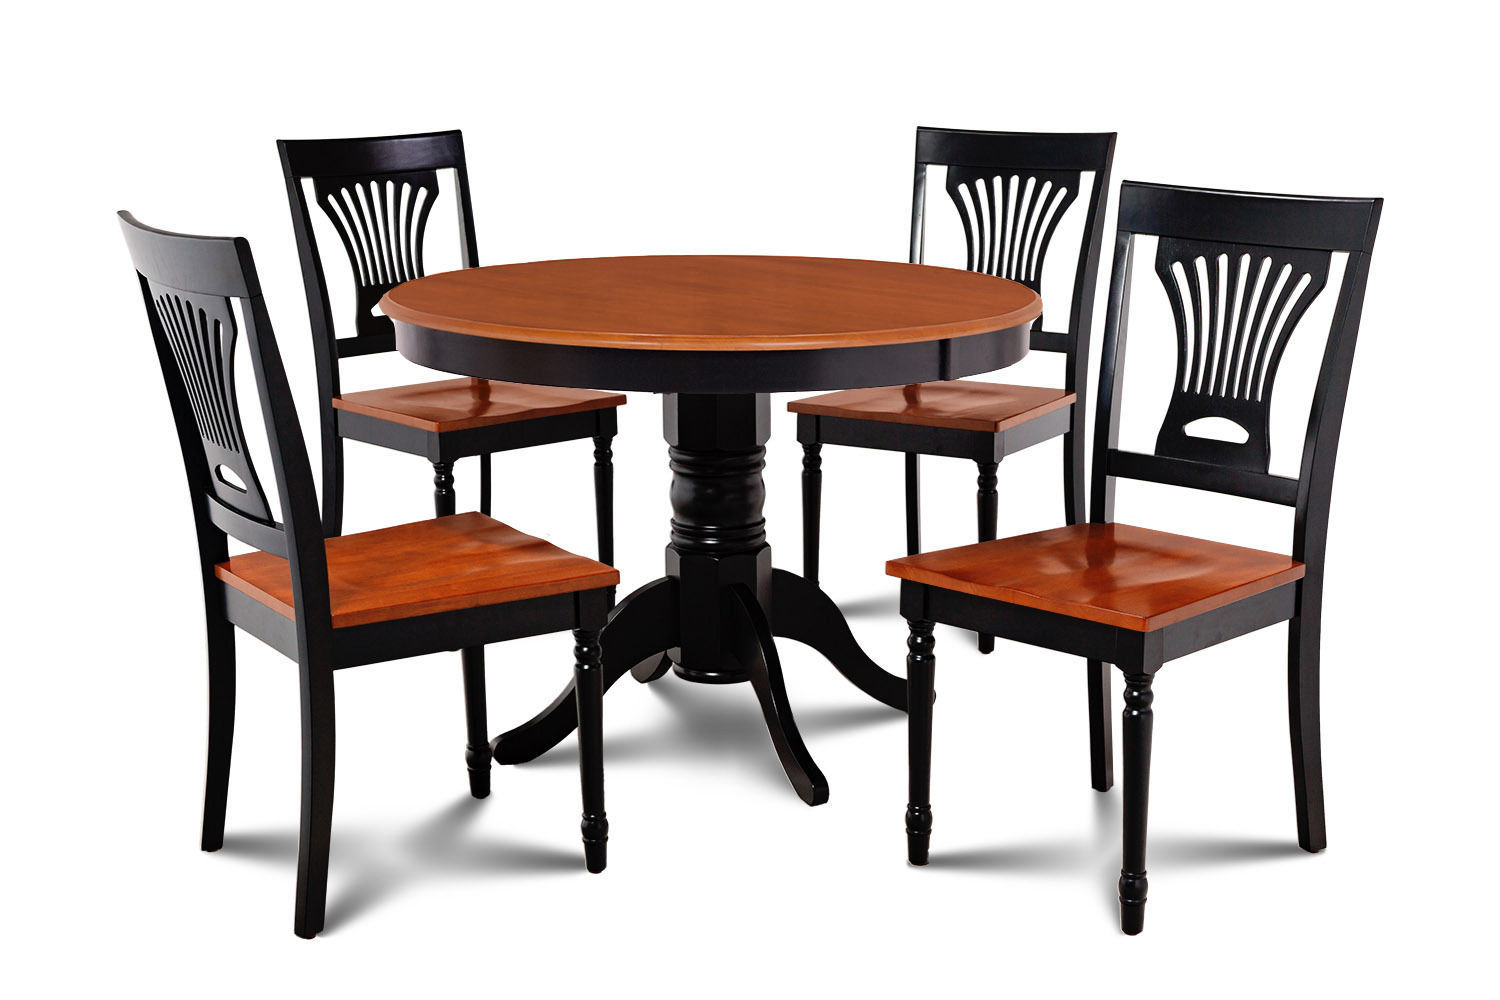 "36"" ROUND TABLE DINETTE KITCHEN TABLE DINING CHAIRS SET  IN BLACK CHERRY"